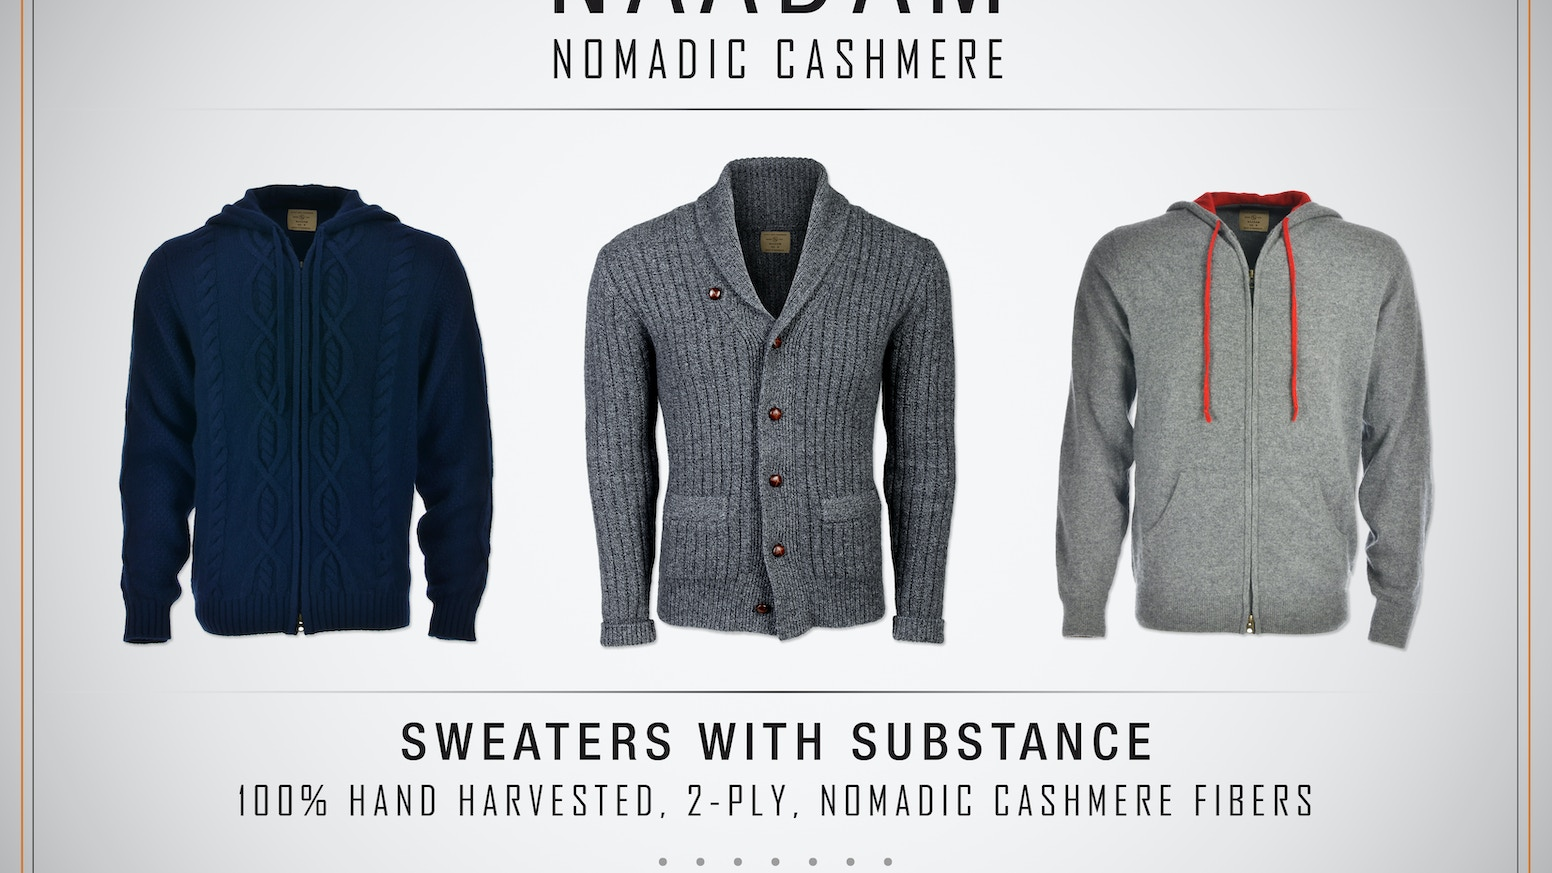 c8119c117 NAADAM  Nomadic  Cashmere  Sweaters with substance.... by Matthew ...